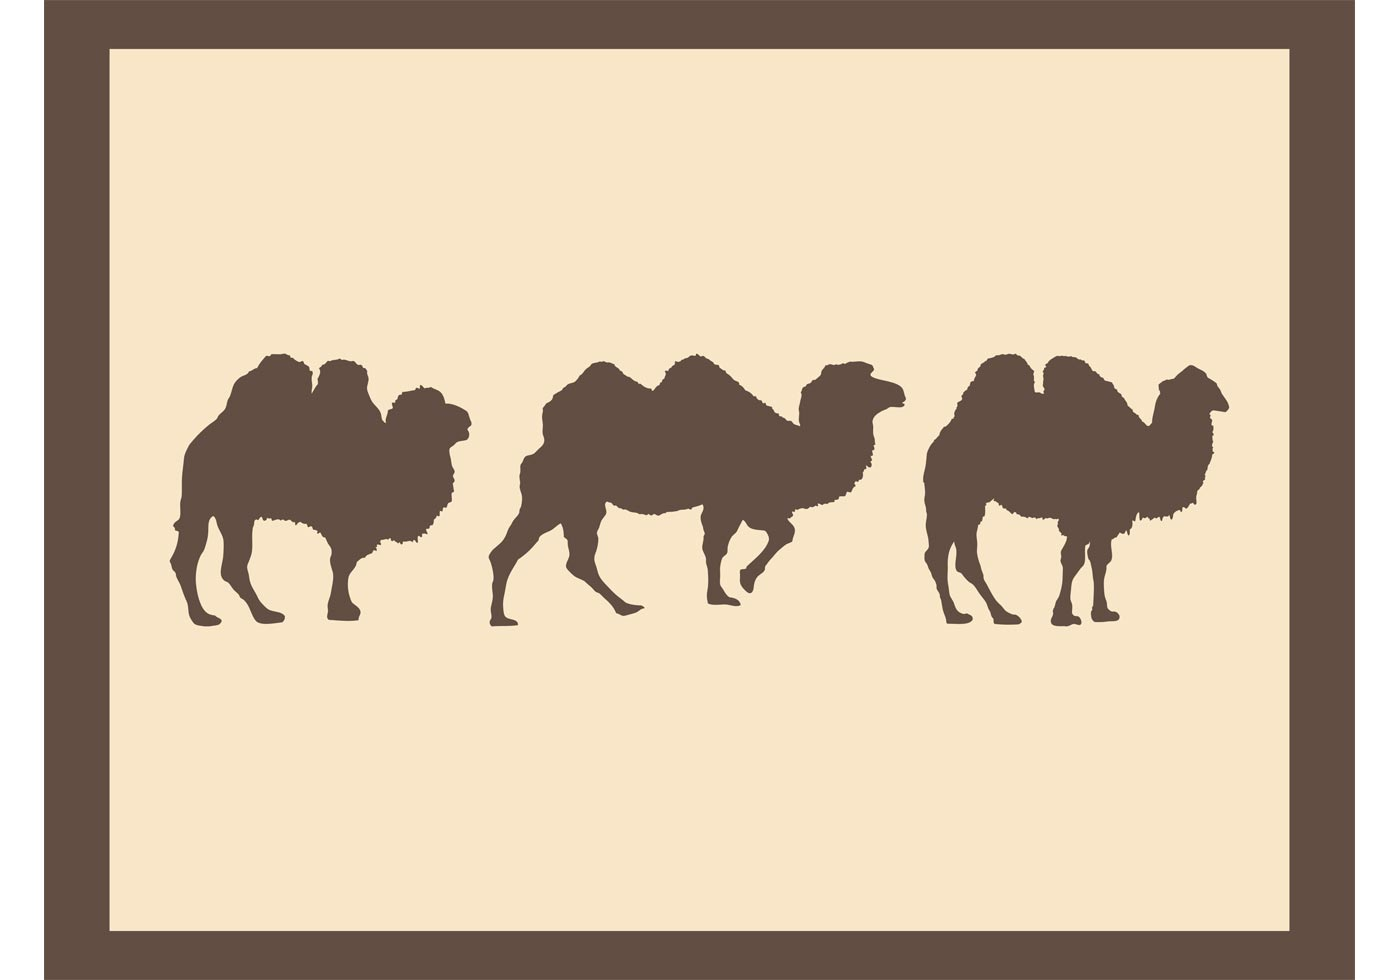 Camels Silhouettes - Download Free Vector Art, Stock ... | 1400 x 980 jpeg 39kB